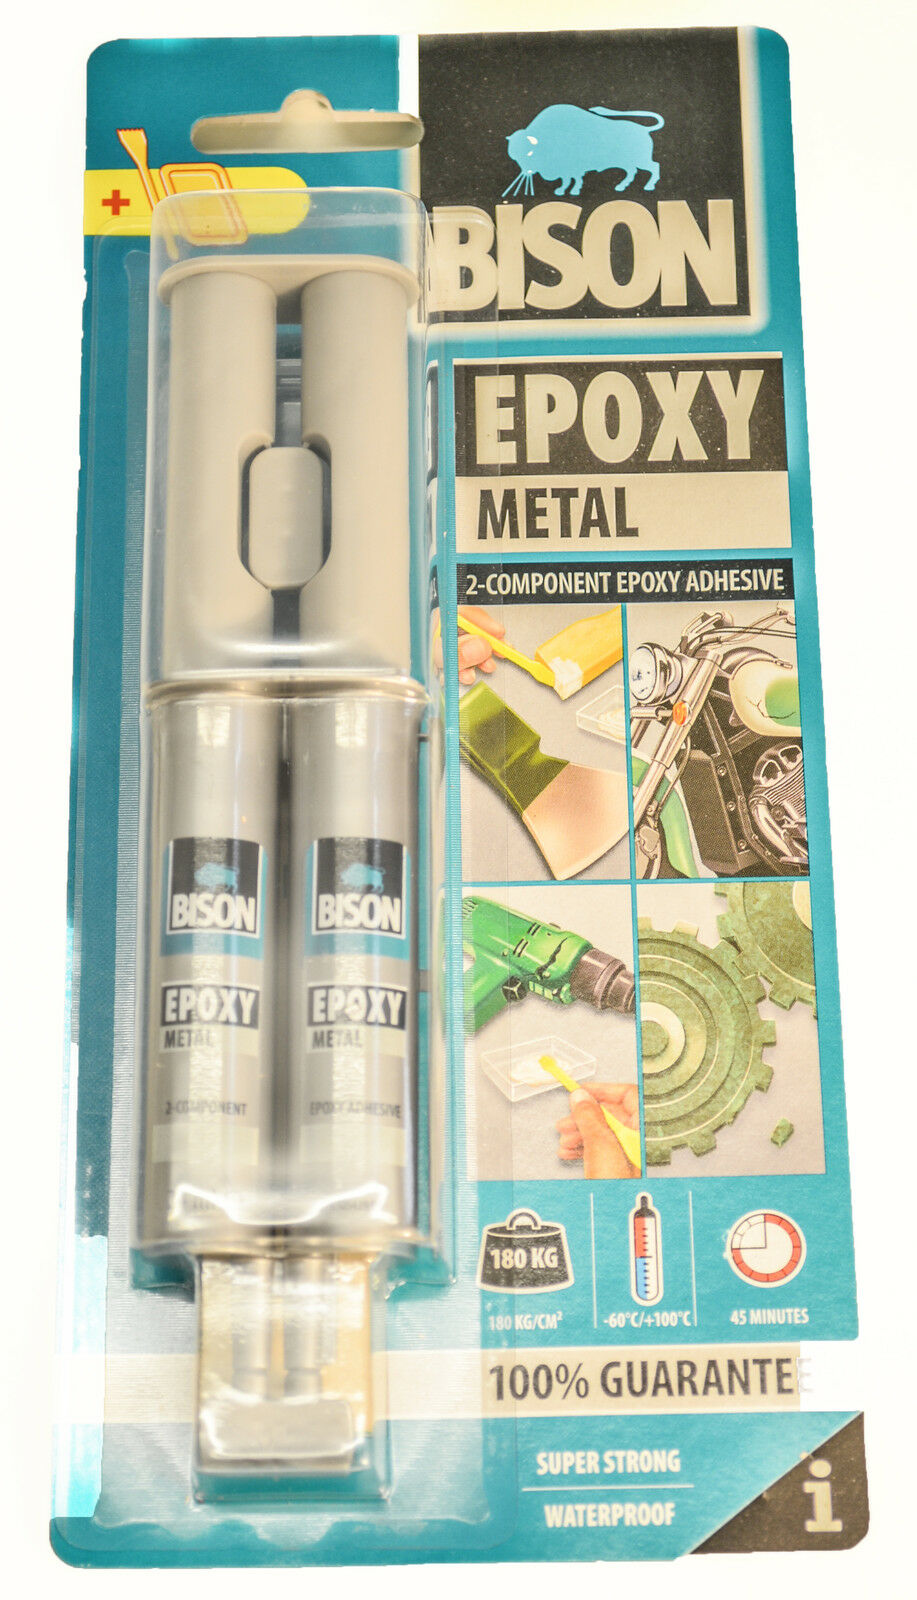 Bison metal bonding epoxy adhesive glue fast cure kit for Credence aluminium adhesive